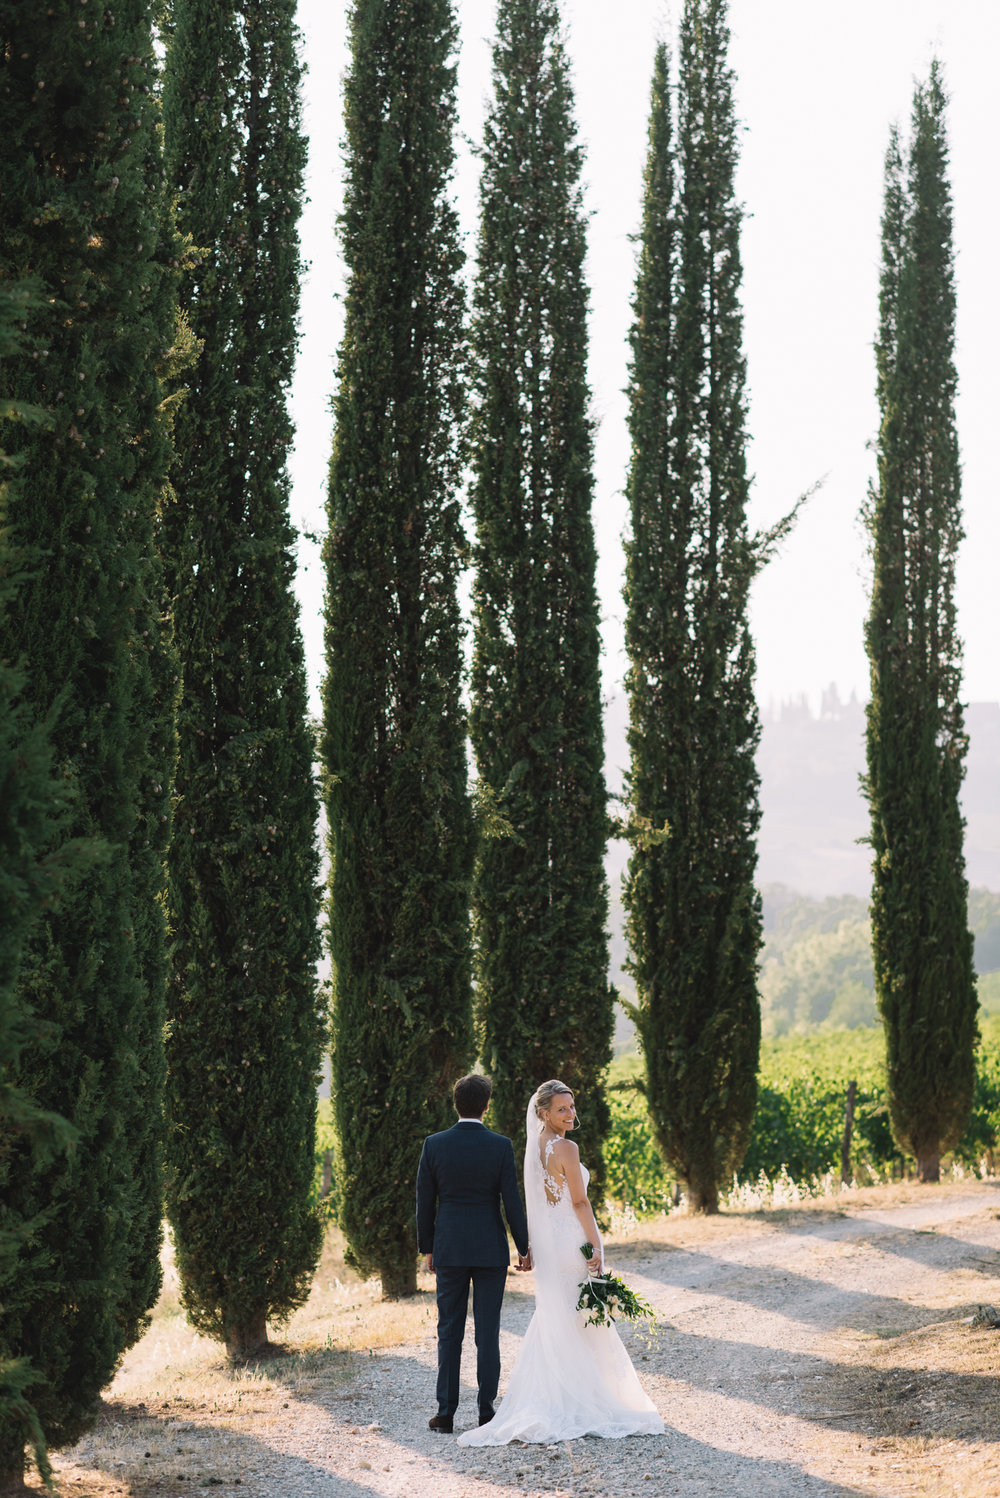 Wedding_Photographer_in_Tuscany_Italy-020.jpg